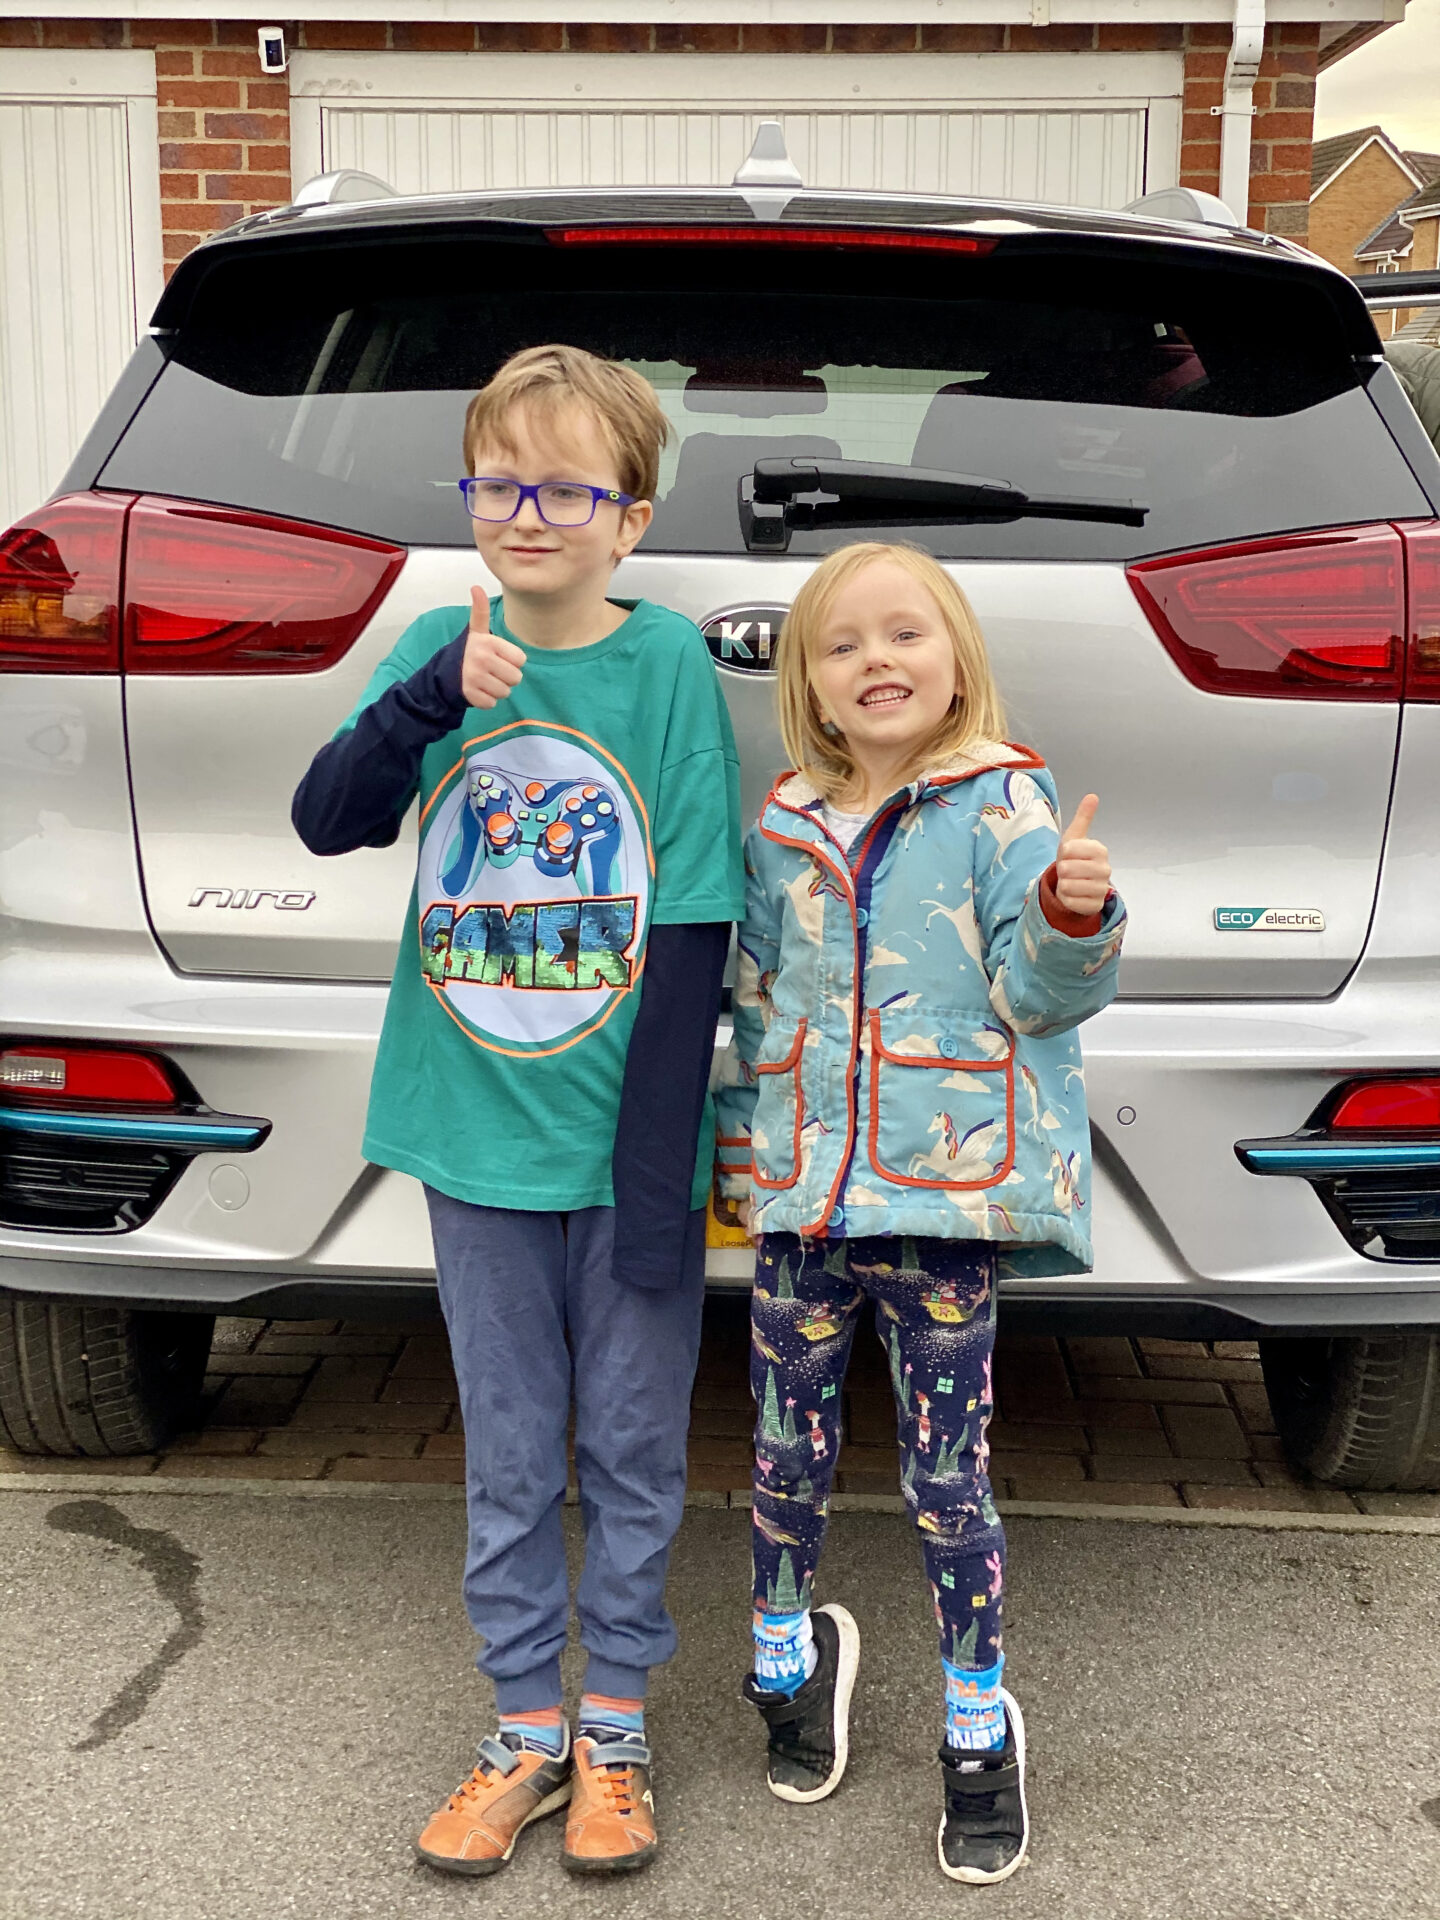 2 children smile with their thumbs up in front of a silver electric car